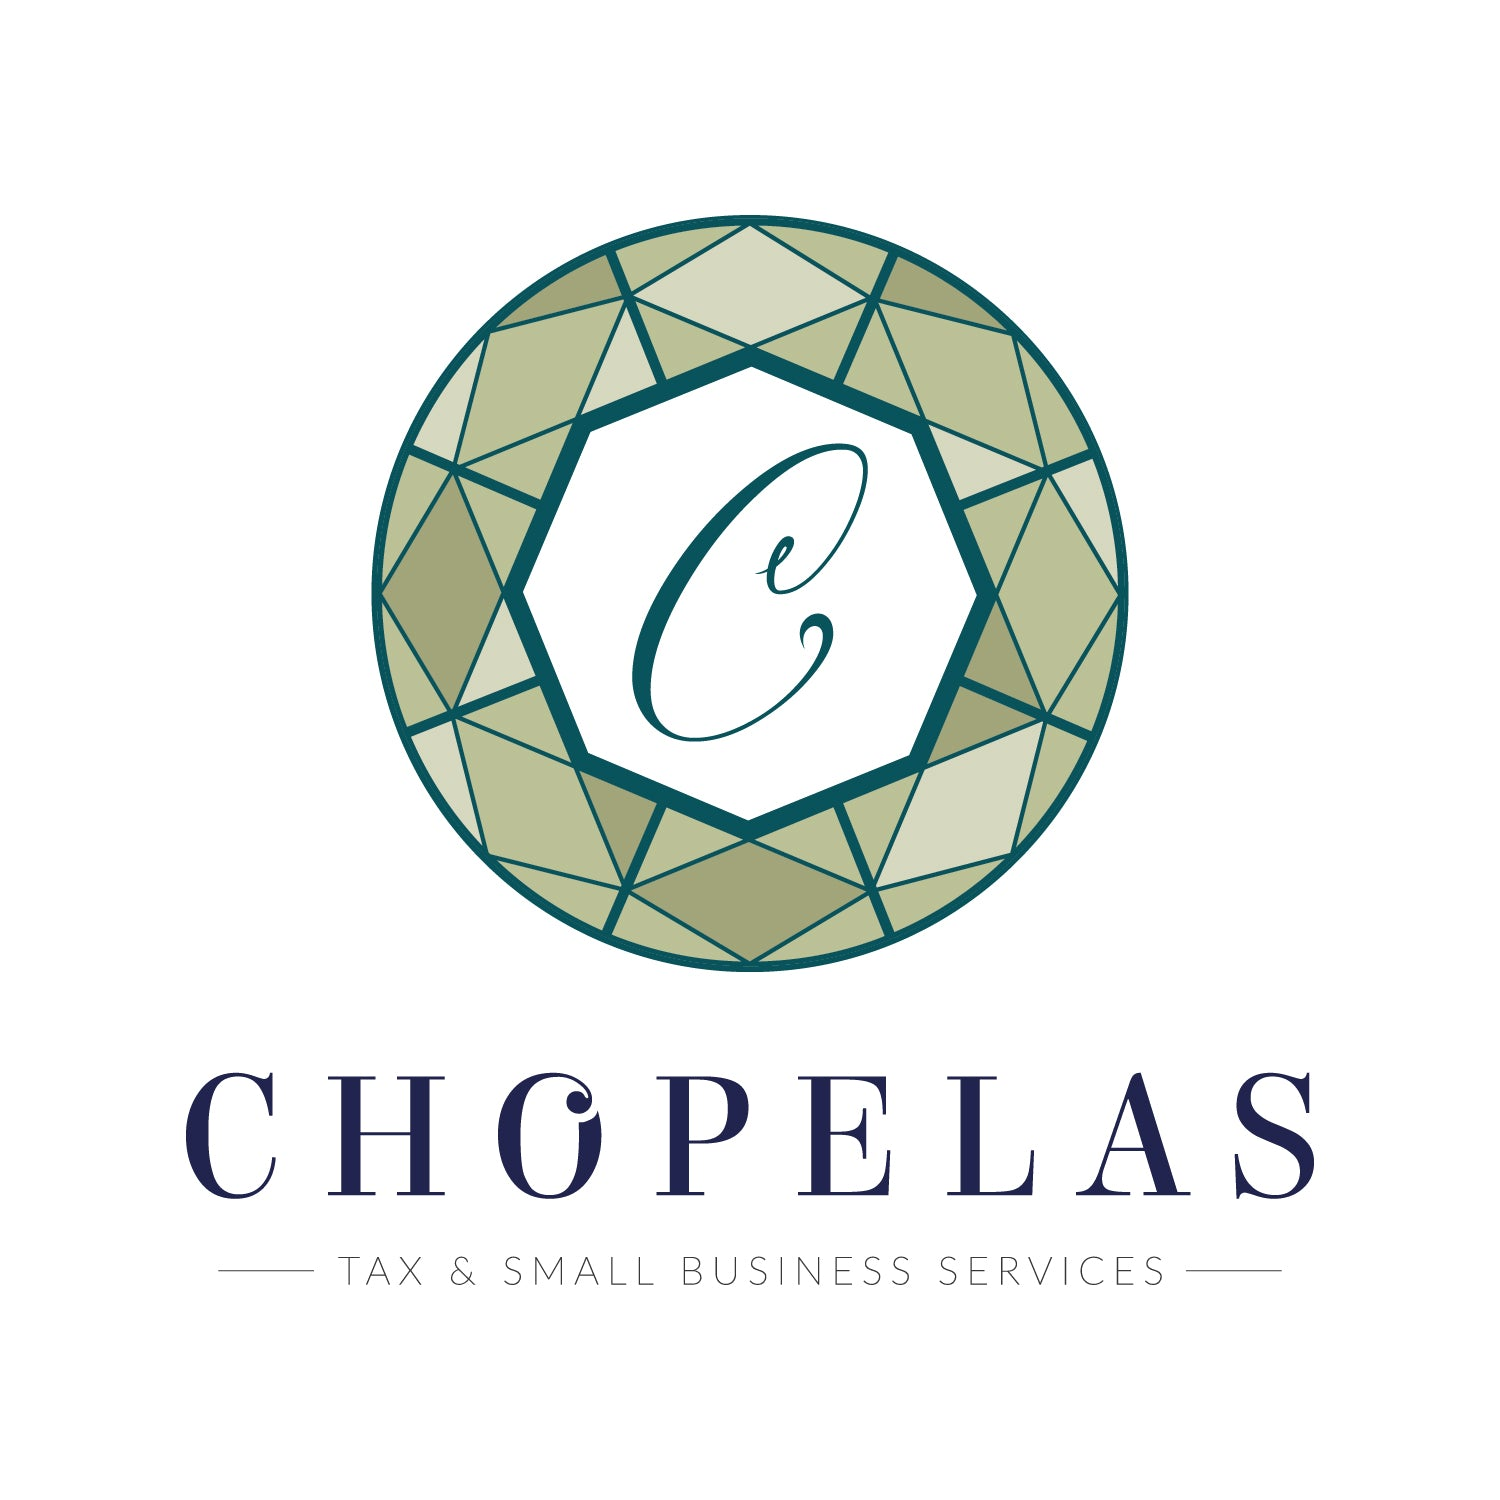 leanne and company chopelas tax services logo design charlotte nc